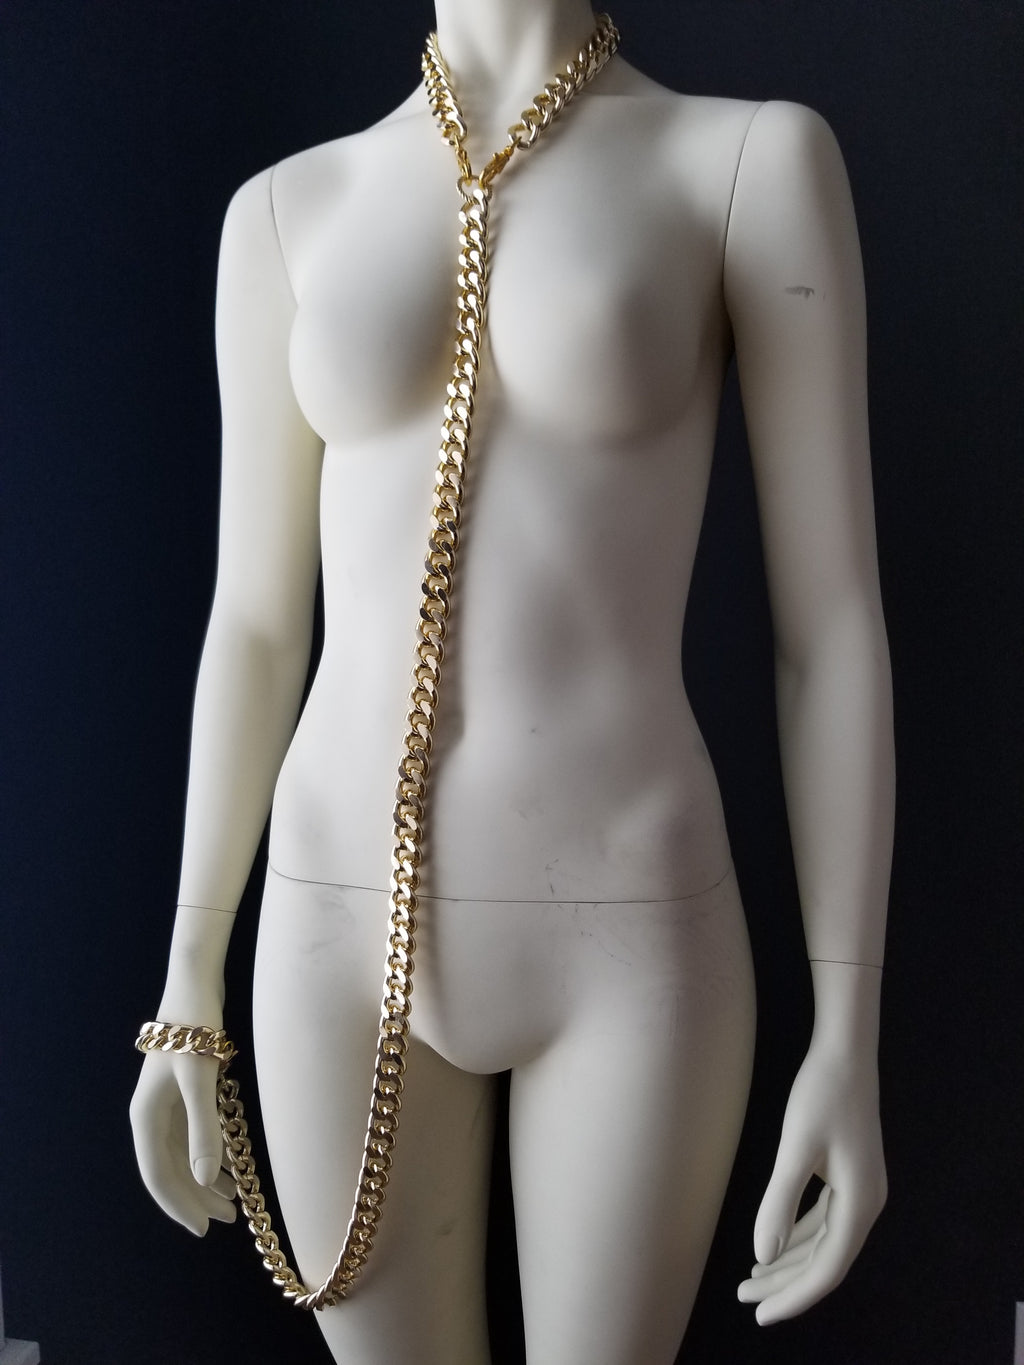 Shop FWHLR bodychains, jewelry and accessories. Our women's statement jewelry is influenced by hip hop and rap style and culture.  All bodychain jewelry is made of thick gold chain making it durable, versatile and bold. Designed for the baddie in every woman.